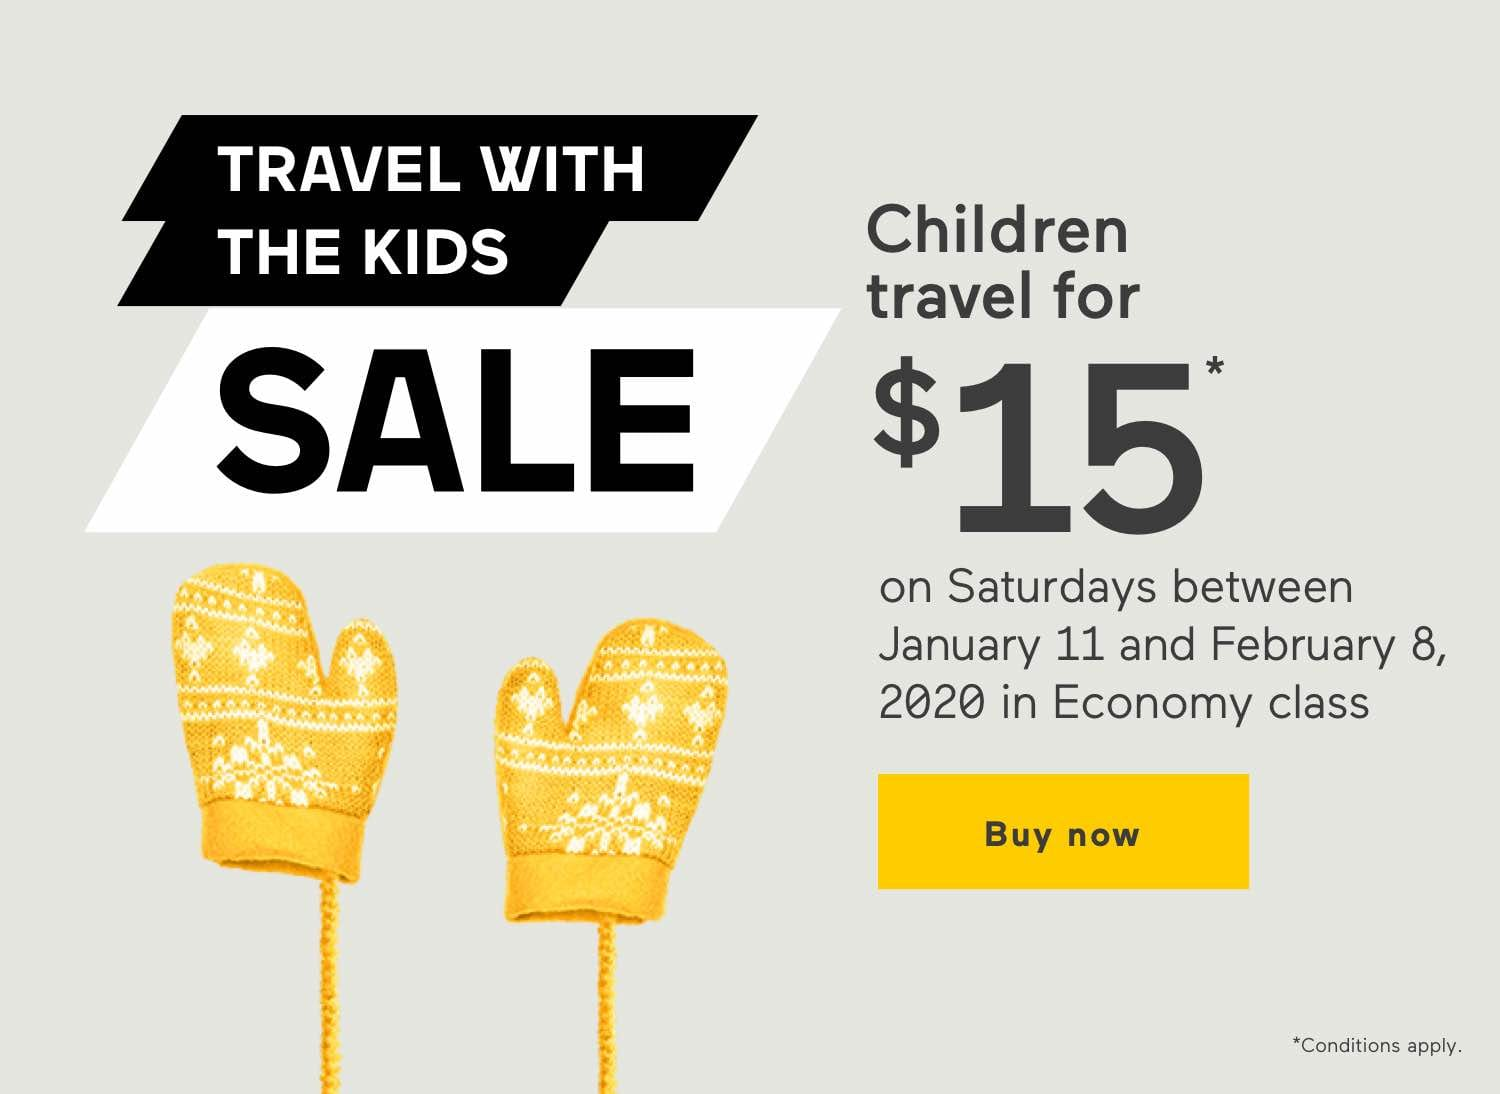 Children travel for $15 on saturdays between January 11 and February 6, 2020 in Economy class